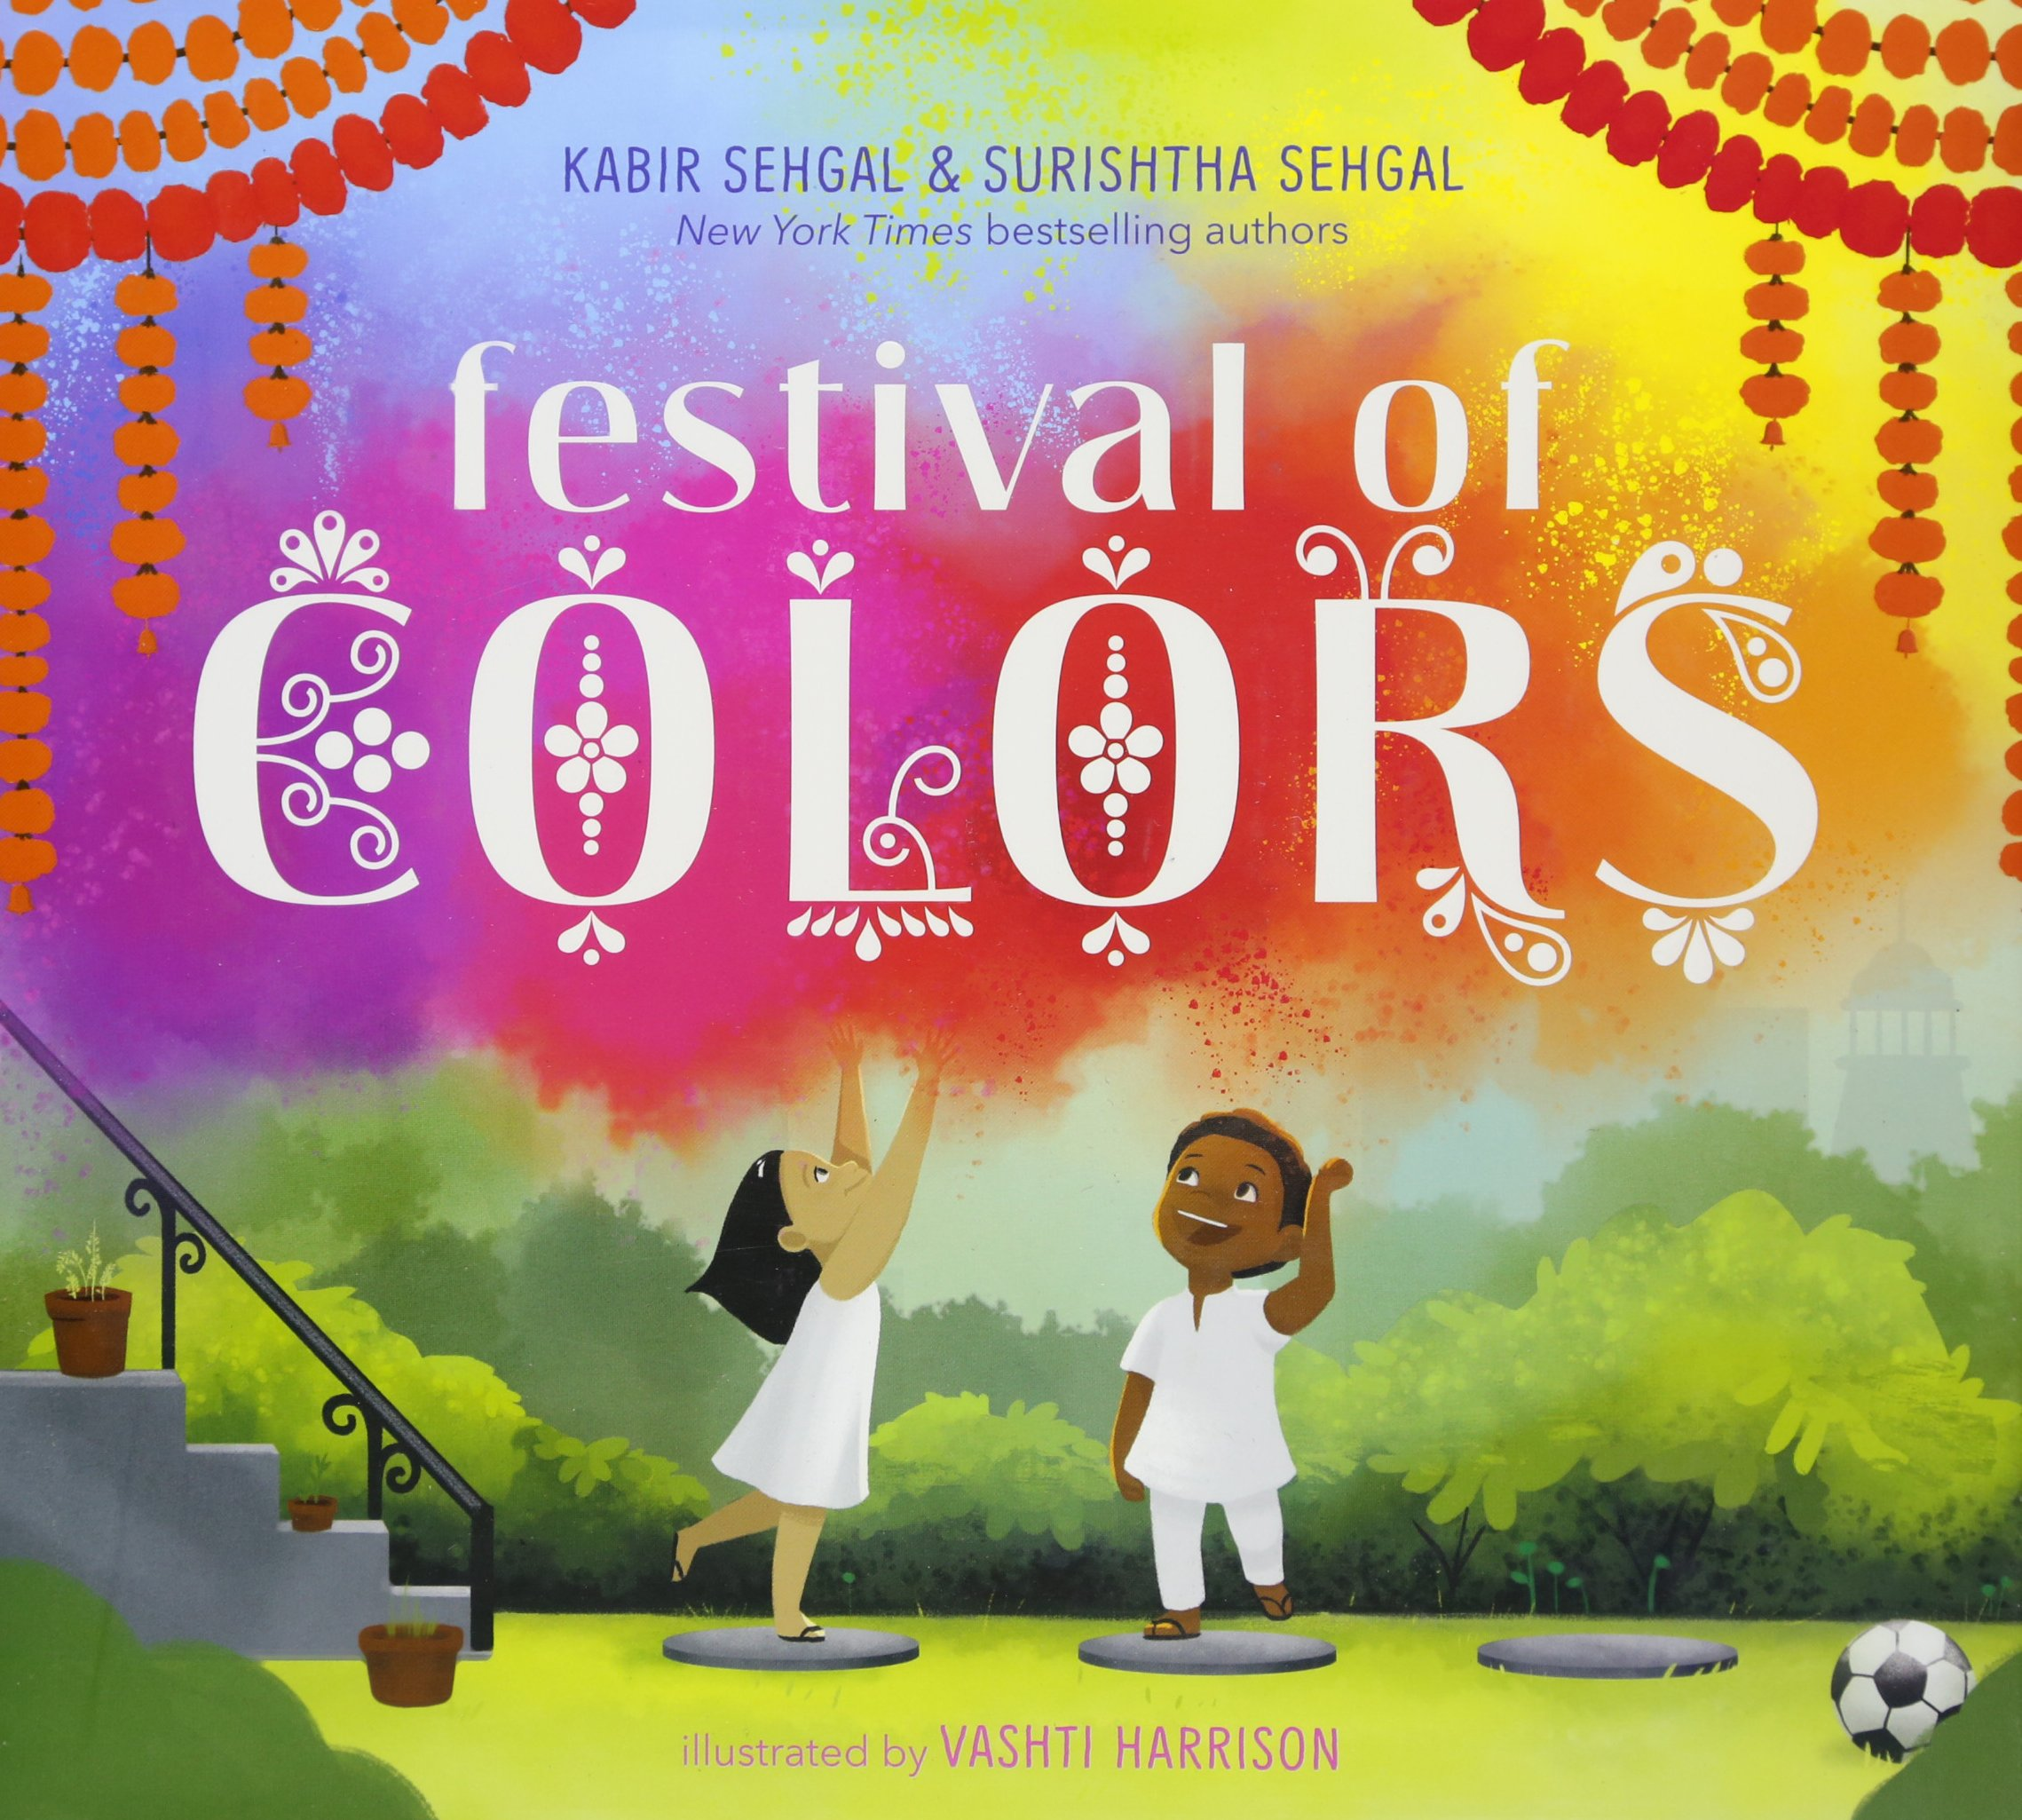 Festival of Colors by Surishtha Sehgal and Kabir Sehgal